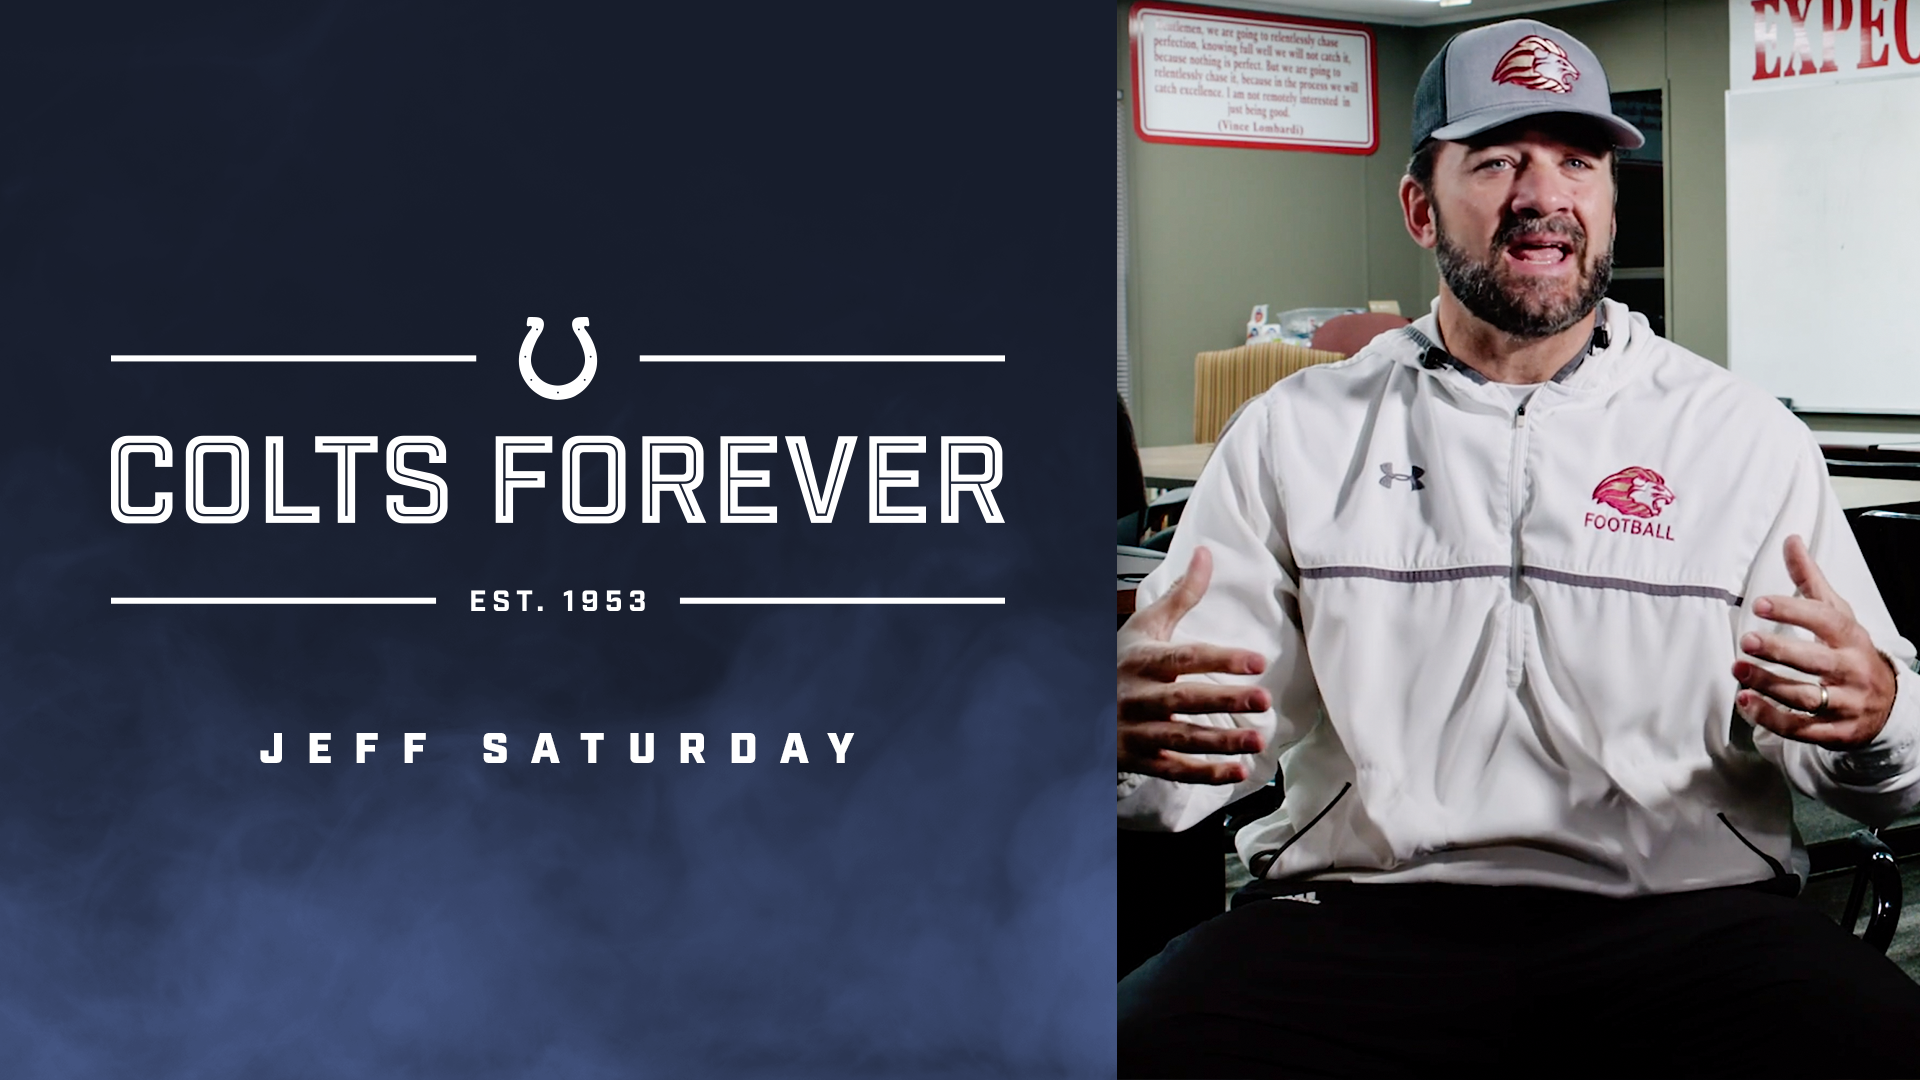 Colts Forever